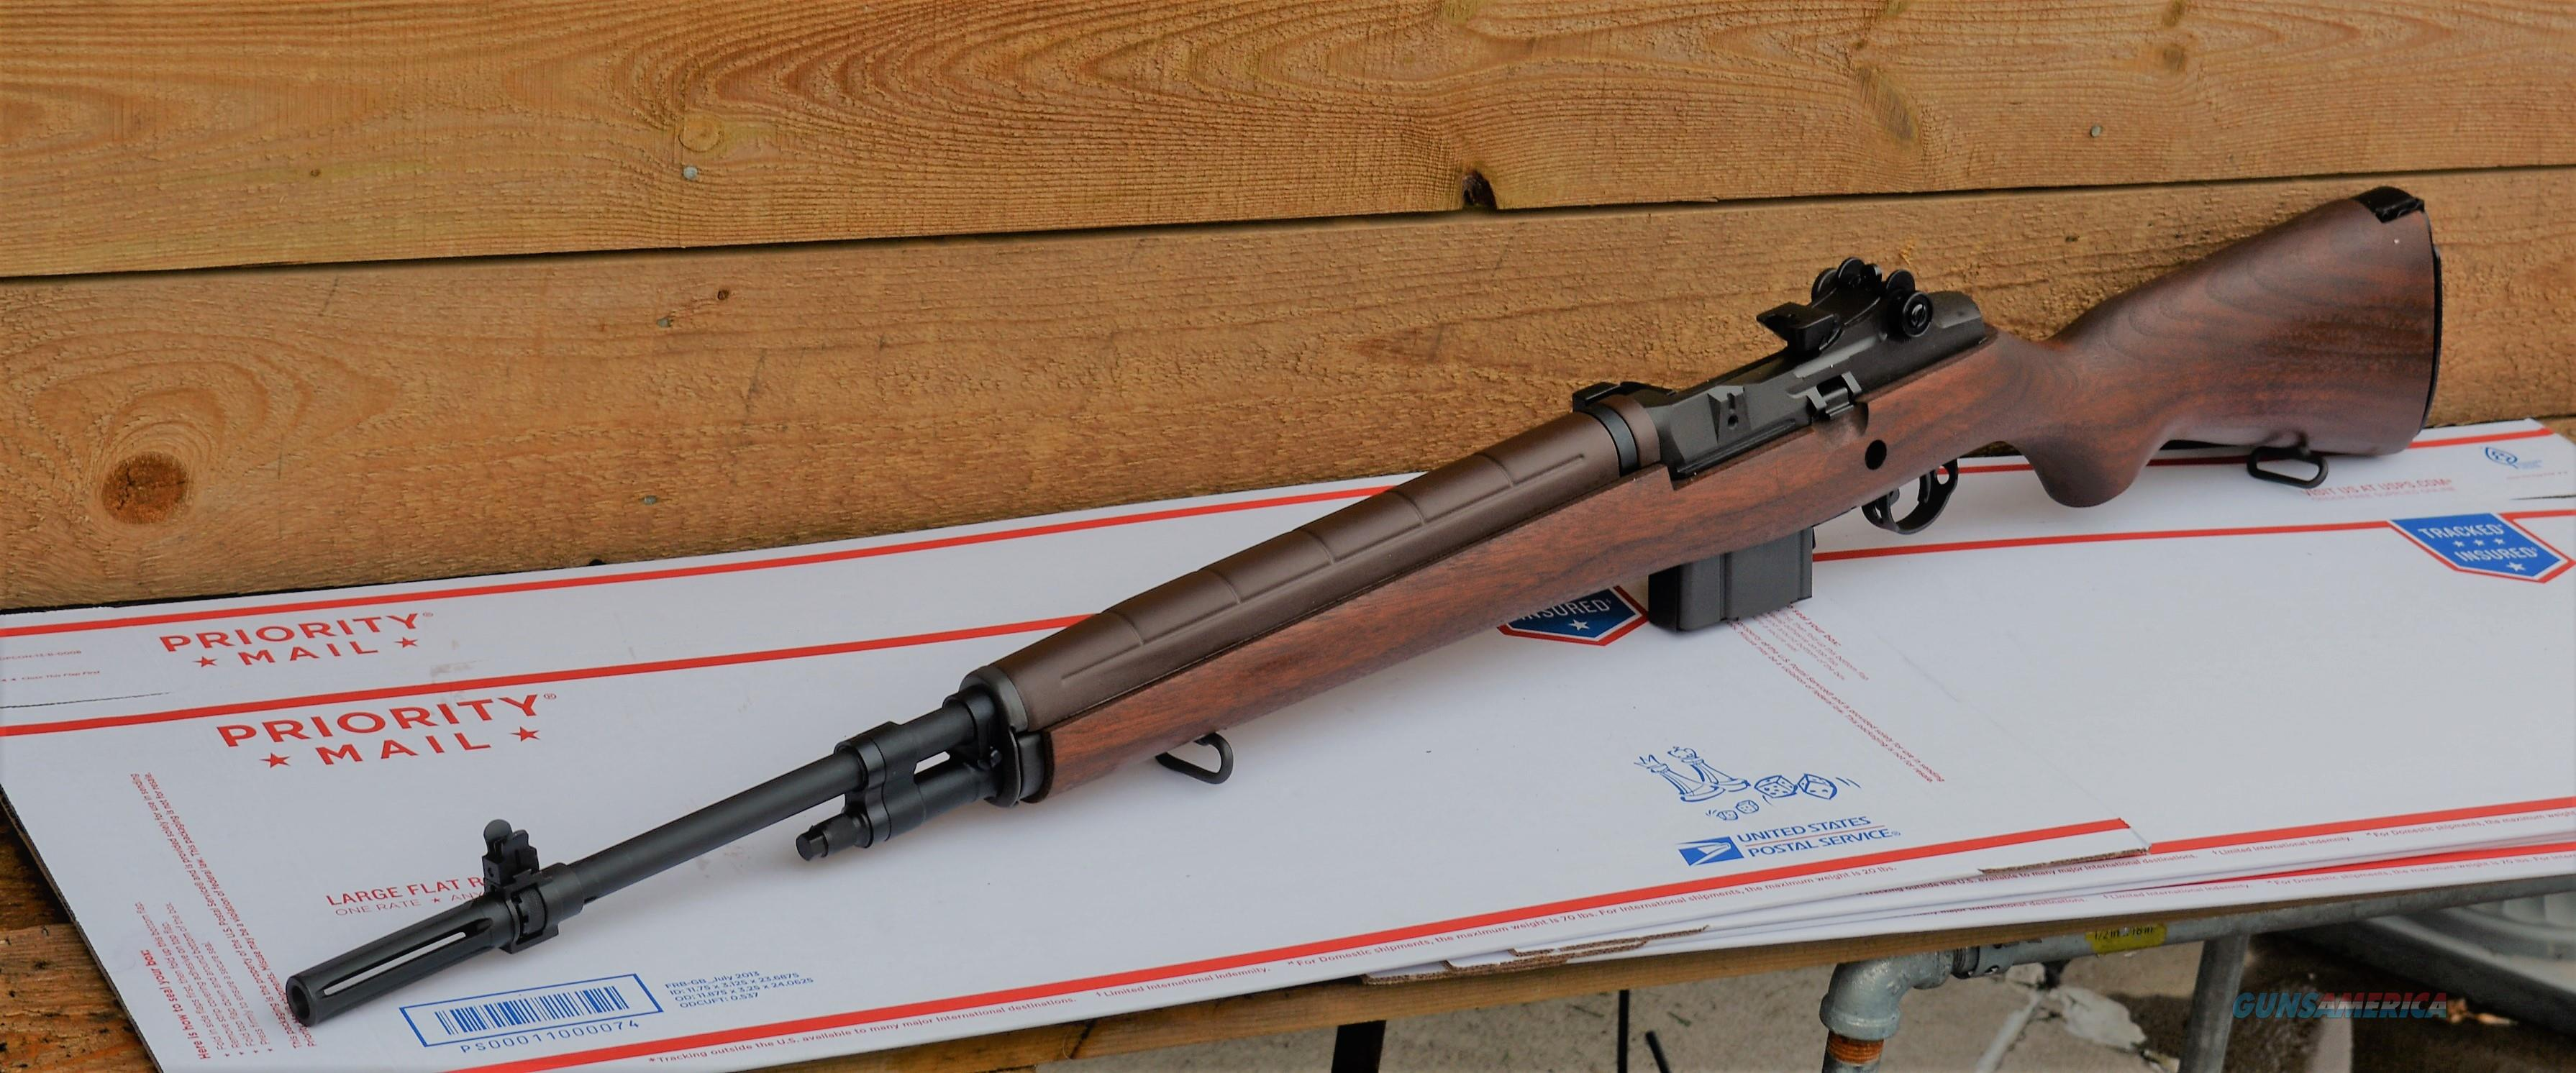 $129 Easy Pay SPRINGFIELD M1A Standard 308 Win Hunting rifle Can be a 1000  yard one shot American W